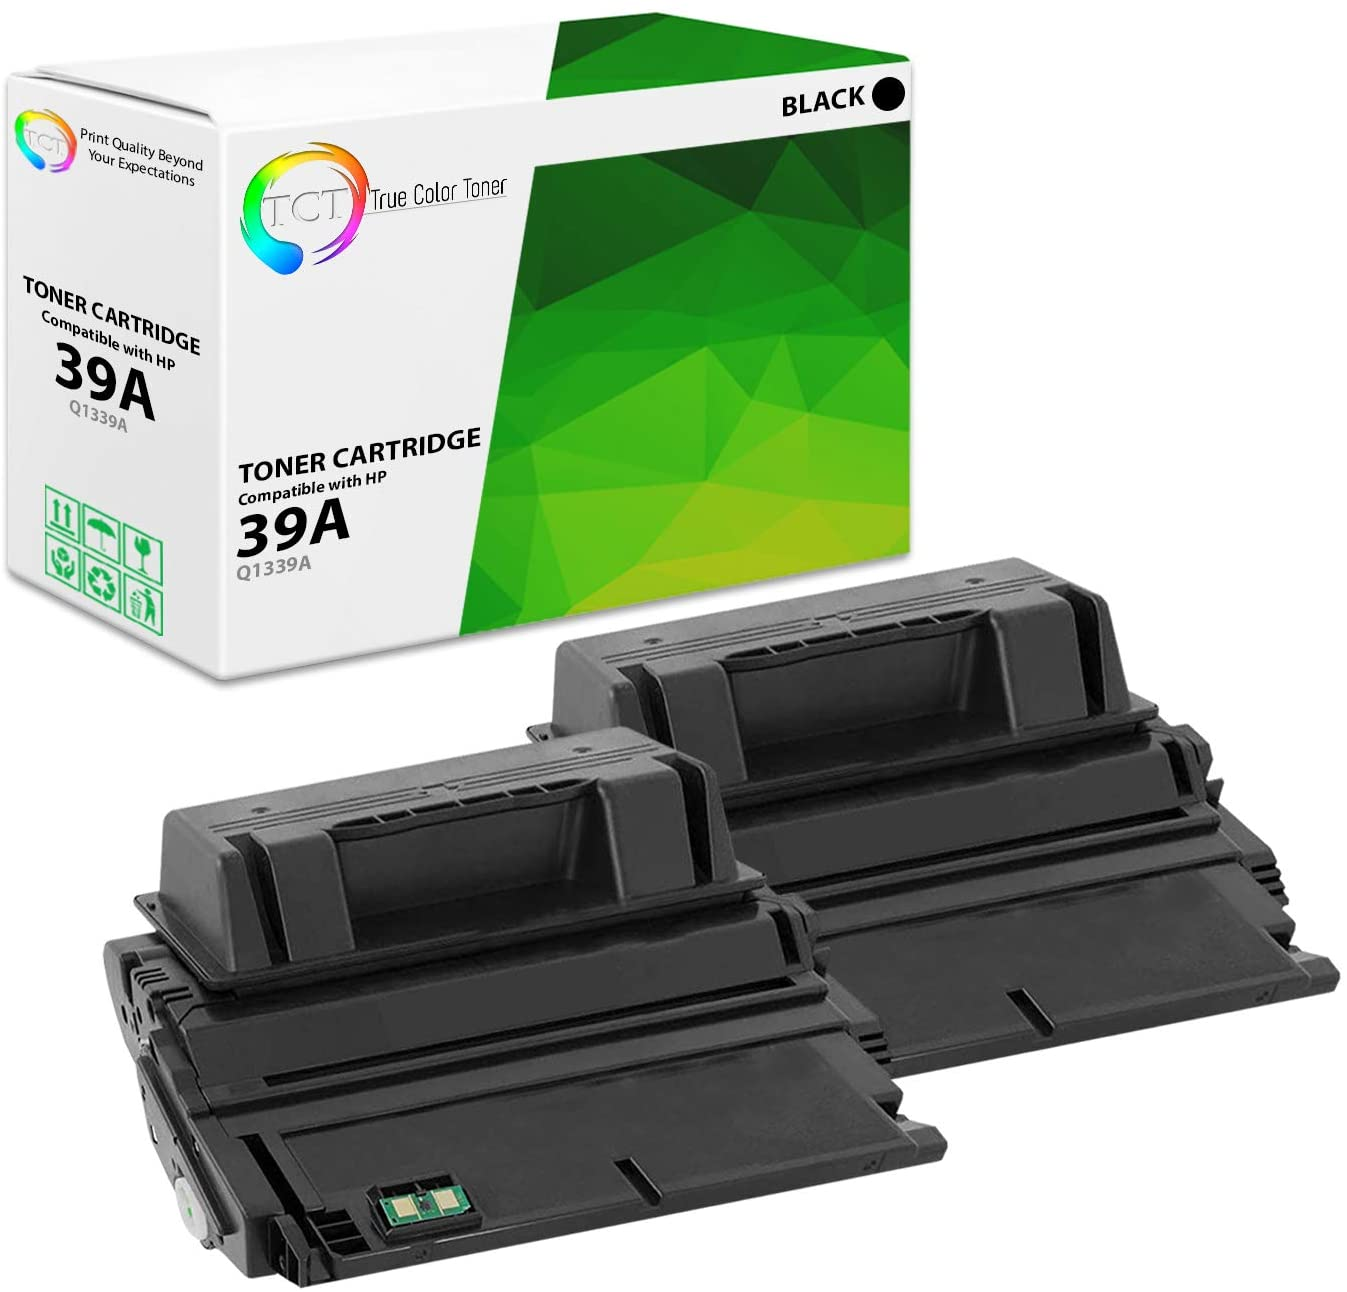 TCT Premium Compatible Toner Cartridge Replacement for HP 39A Q1339A Black Works with HP Laserjet 4300 4300DTN 4300DTNS 4300DTNSL 4300N 4300TN Printers (20,000 Pages) - 2 Pack